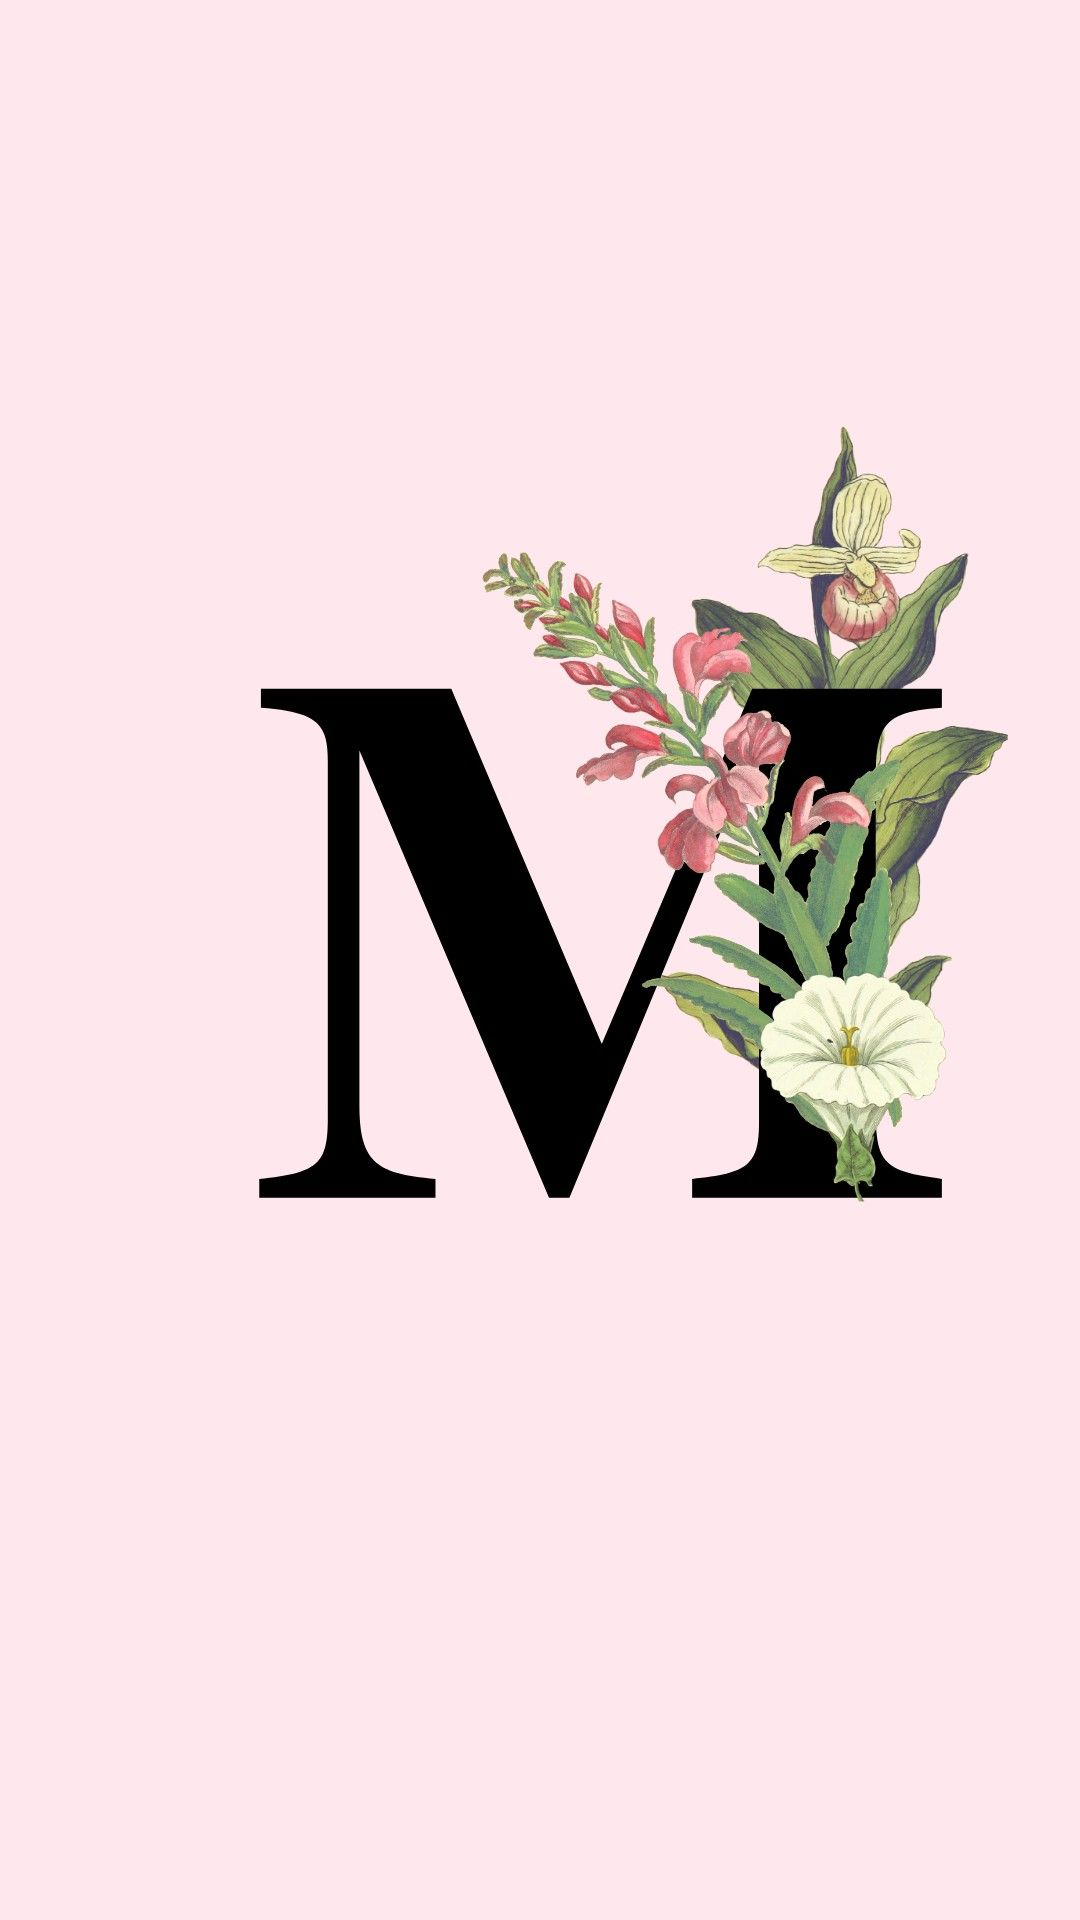 Monogram Wallpaper By Me The Letter A Monogram Wallpaper Cellphone Wallpaper Iphone Wallpaper